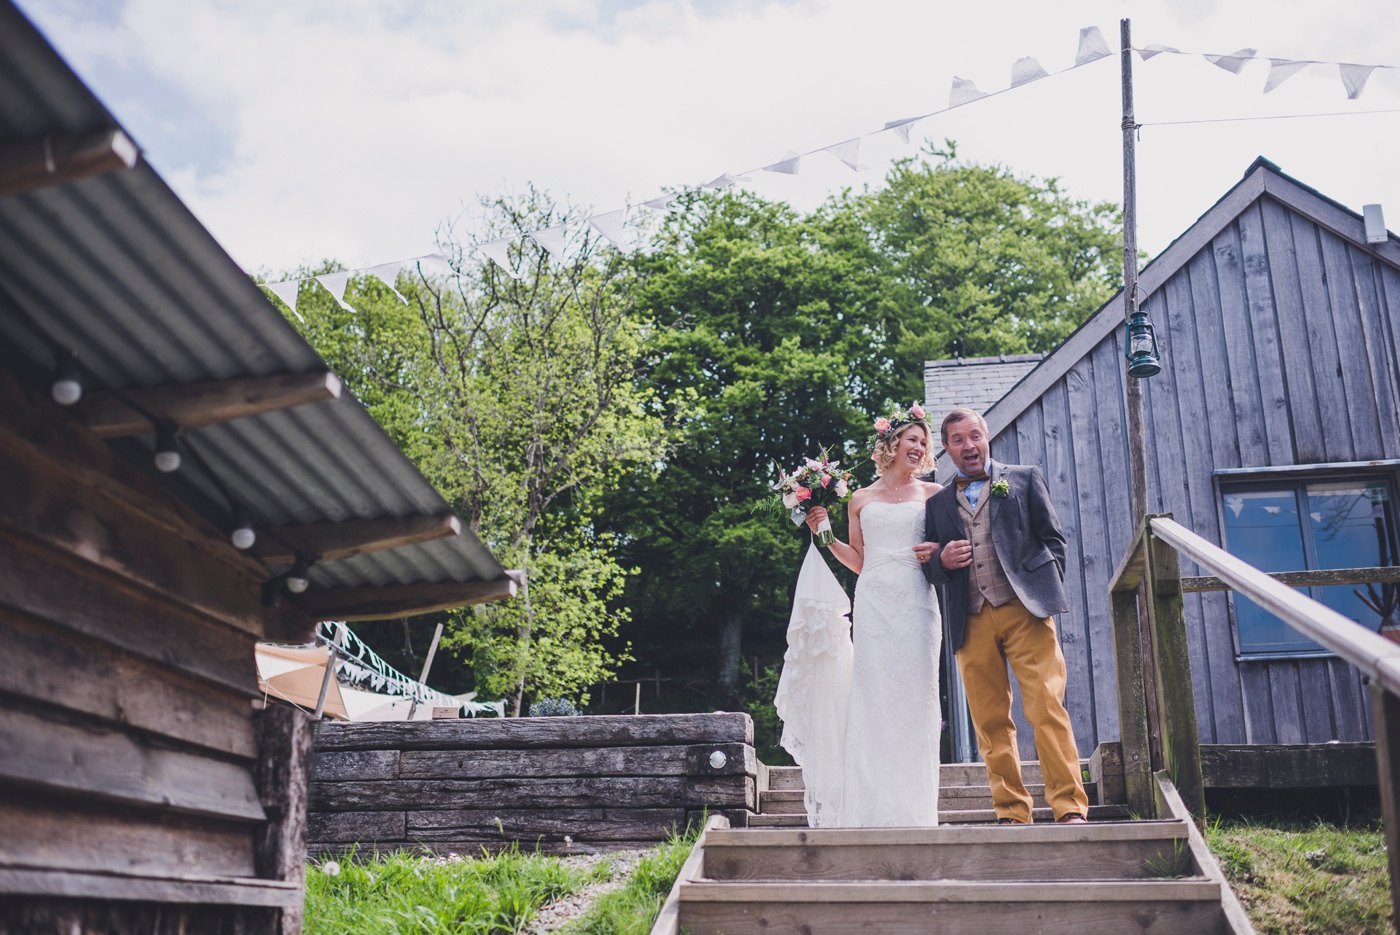 Outdoor wedding ceremony Fforest Wales